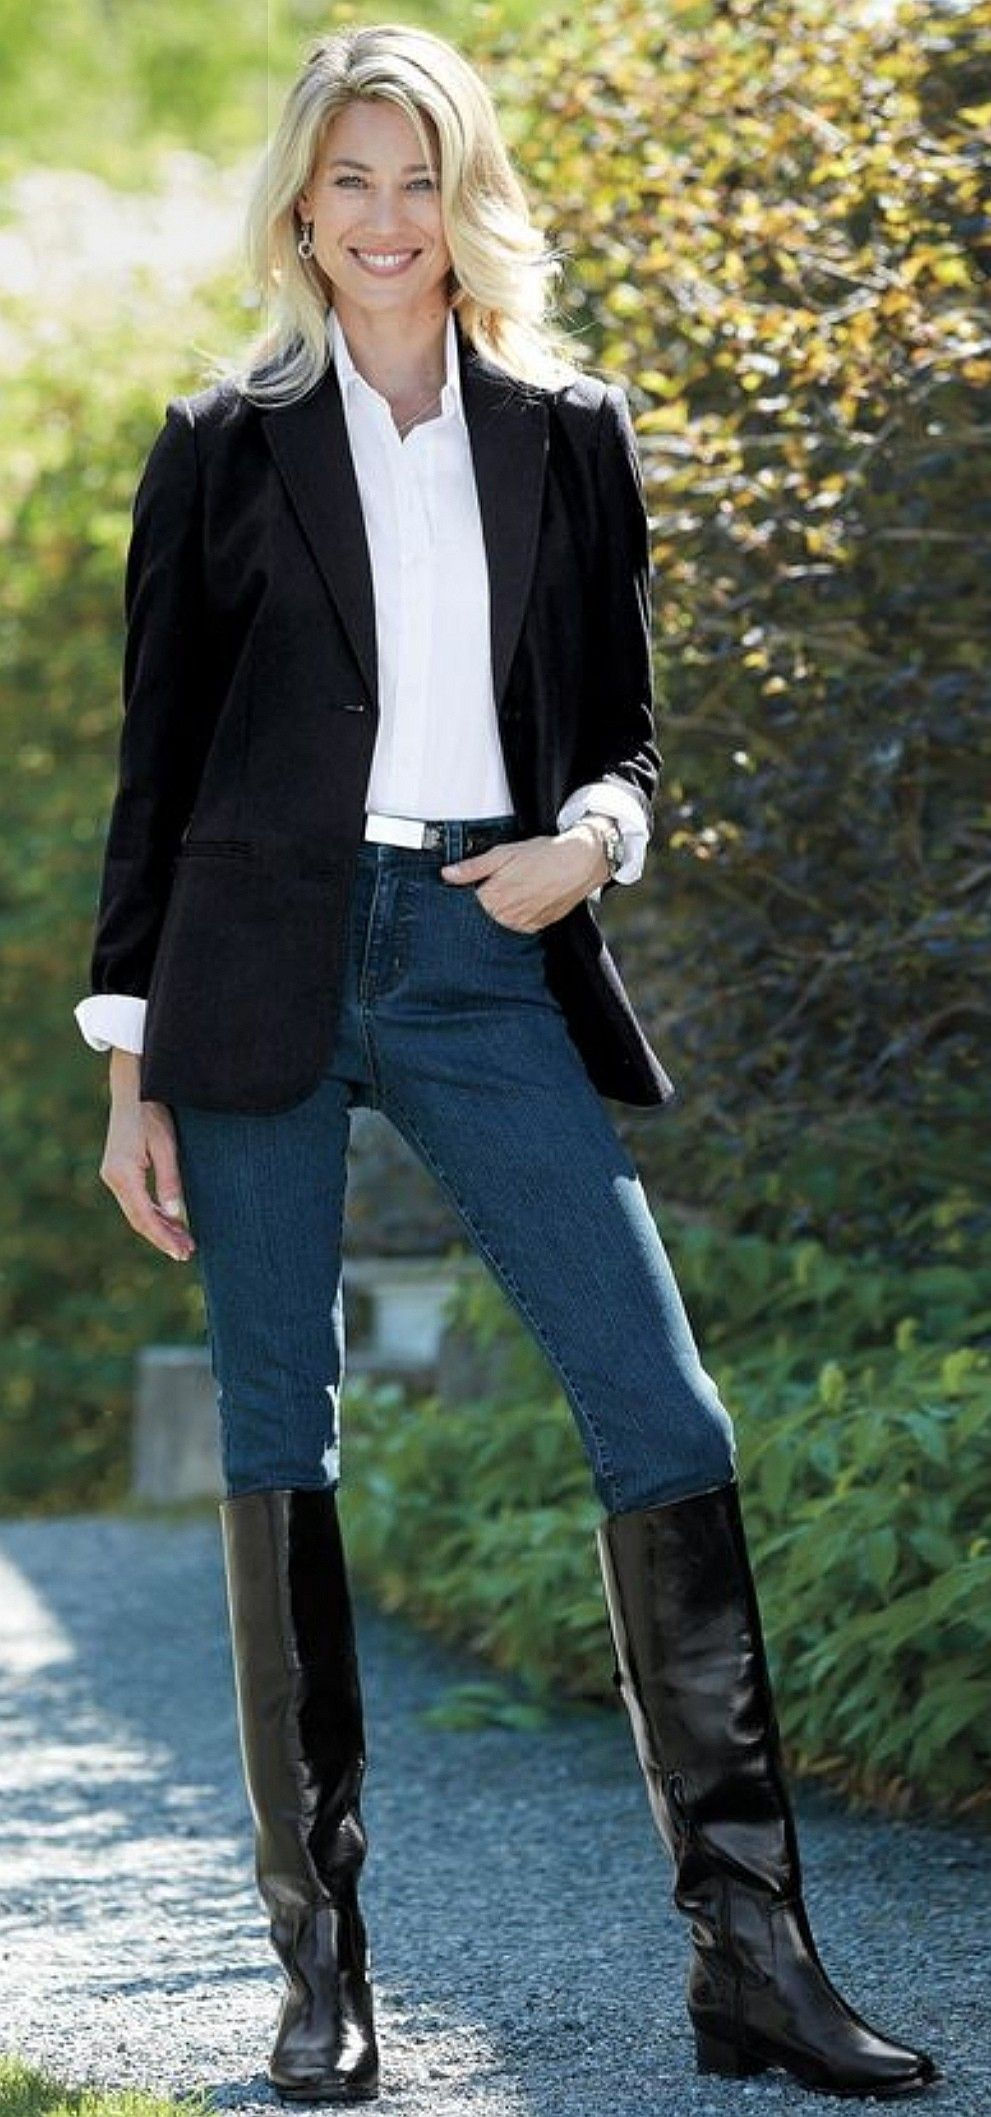 Black Zippered Leather Riding Boots Jeans Outfit Black Boots Outfit Black Riding Boots Outfit Riding Boots Outfit Winter [ 2117 x 991 Pixel ]